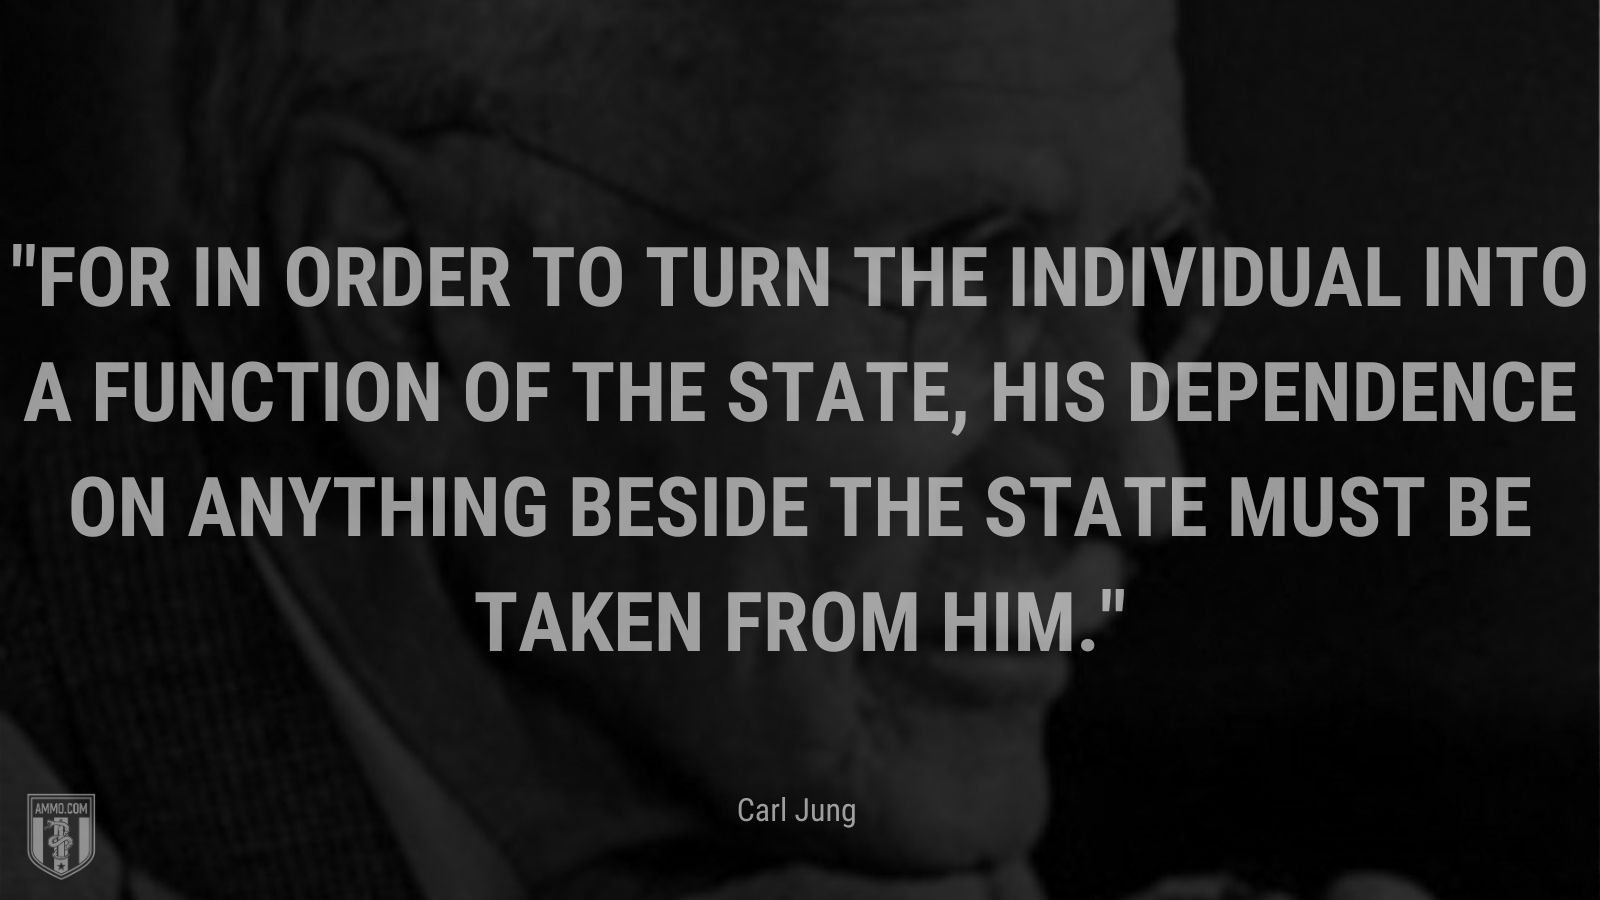 """""""For in order to turn the individual into a function of the State, his dependence on anything beside the State must be taken from him. - Carl Jung"""